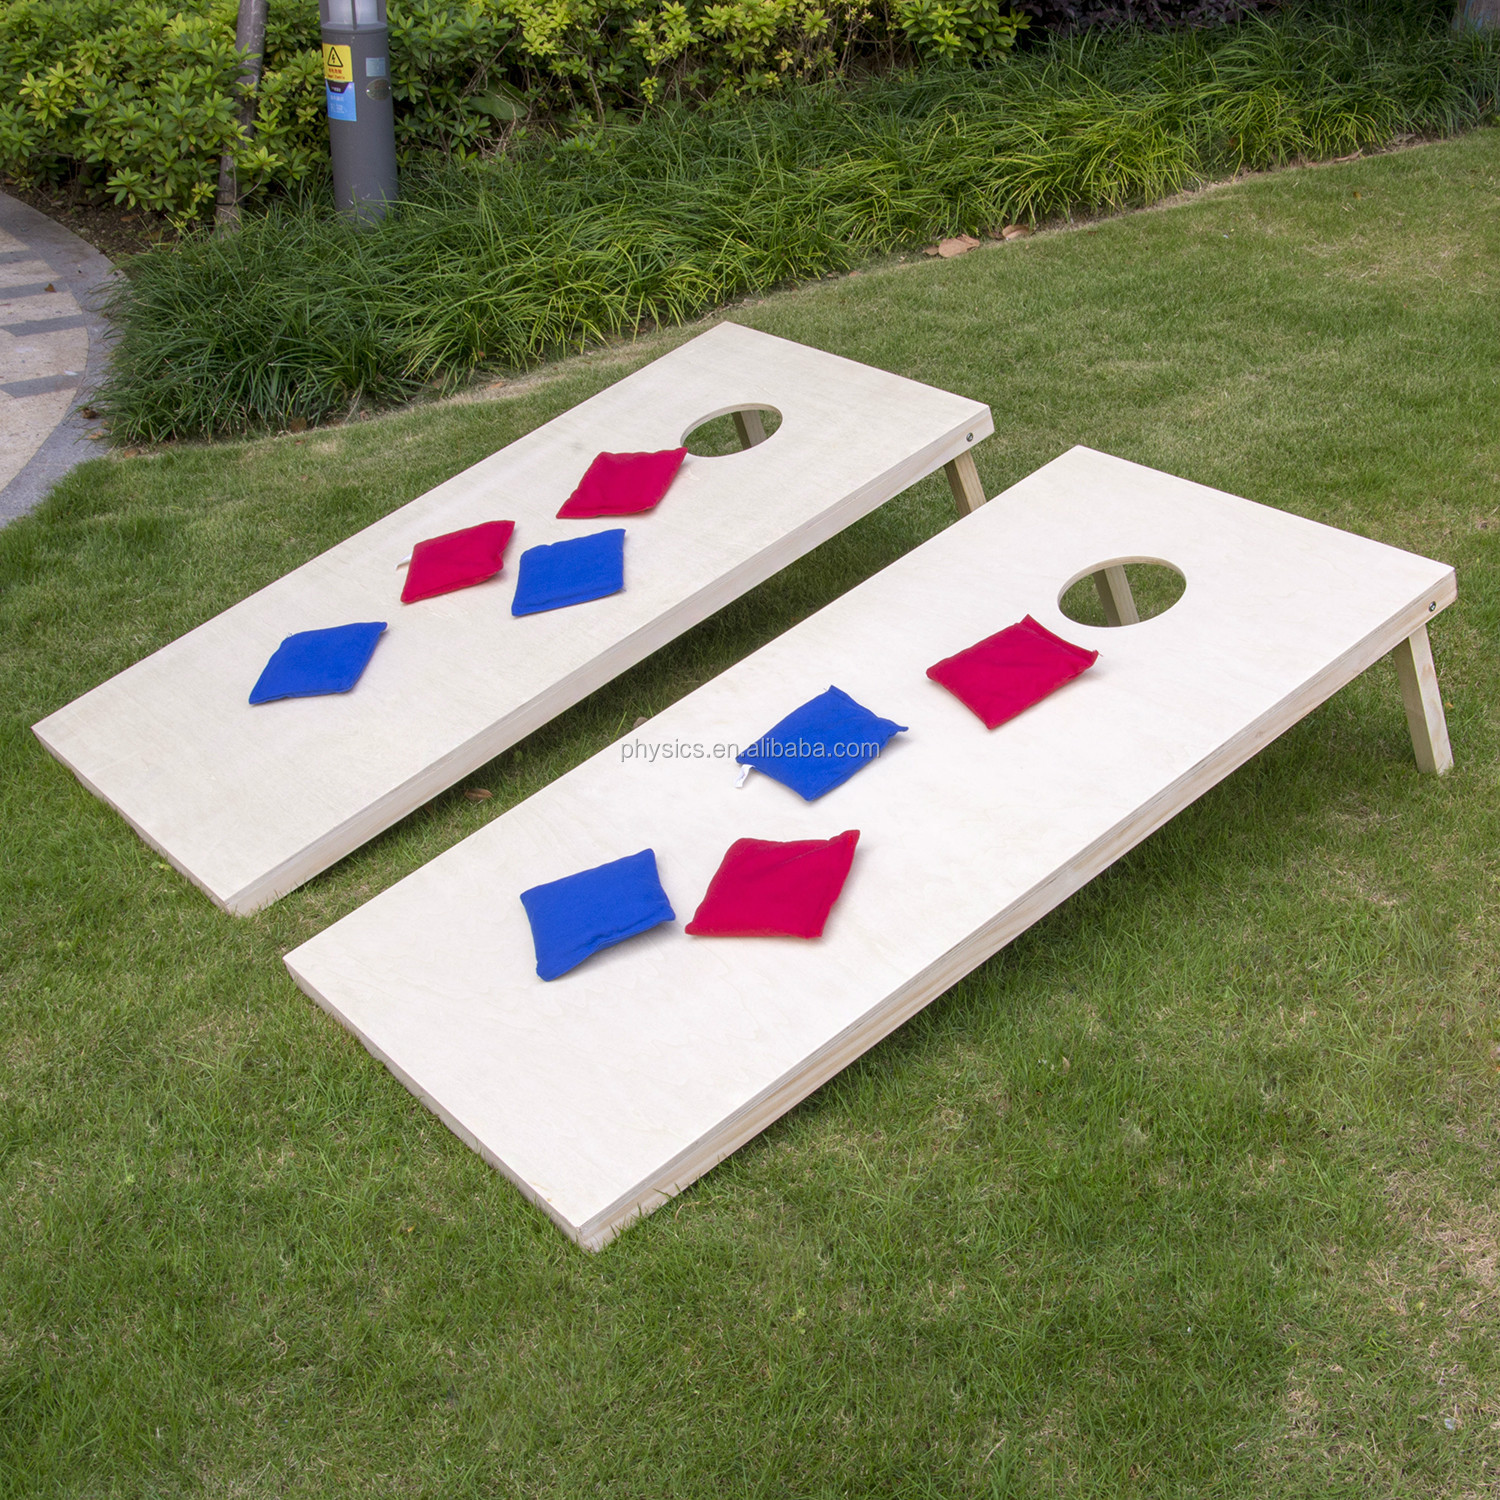 Astonishing Solid Wood Garden Game Cornhole Board Bean Bag Toss Game Set With 8 All Weather Cornhole Bags Buy Bean Bag Toss Game Wooden Game Set Outdoor Game Cjindustries Chair Design For Home Cjindustriesco